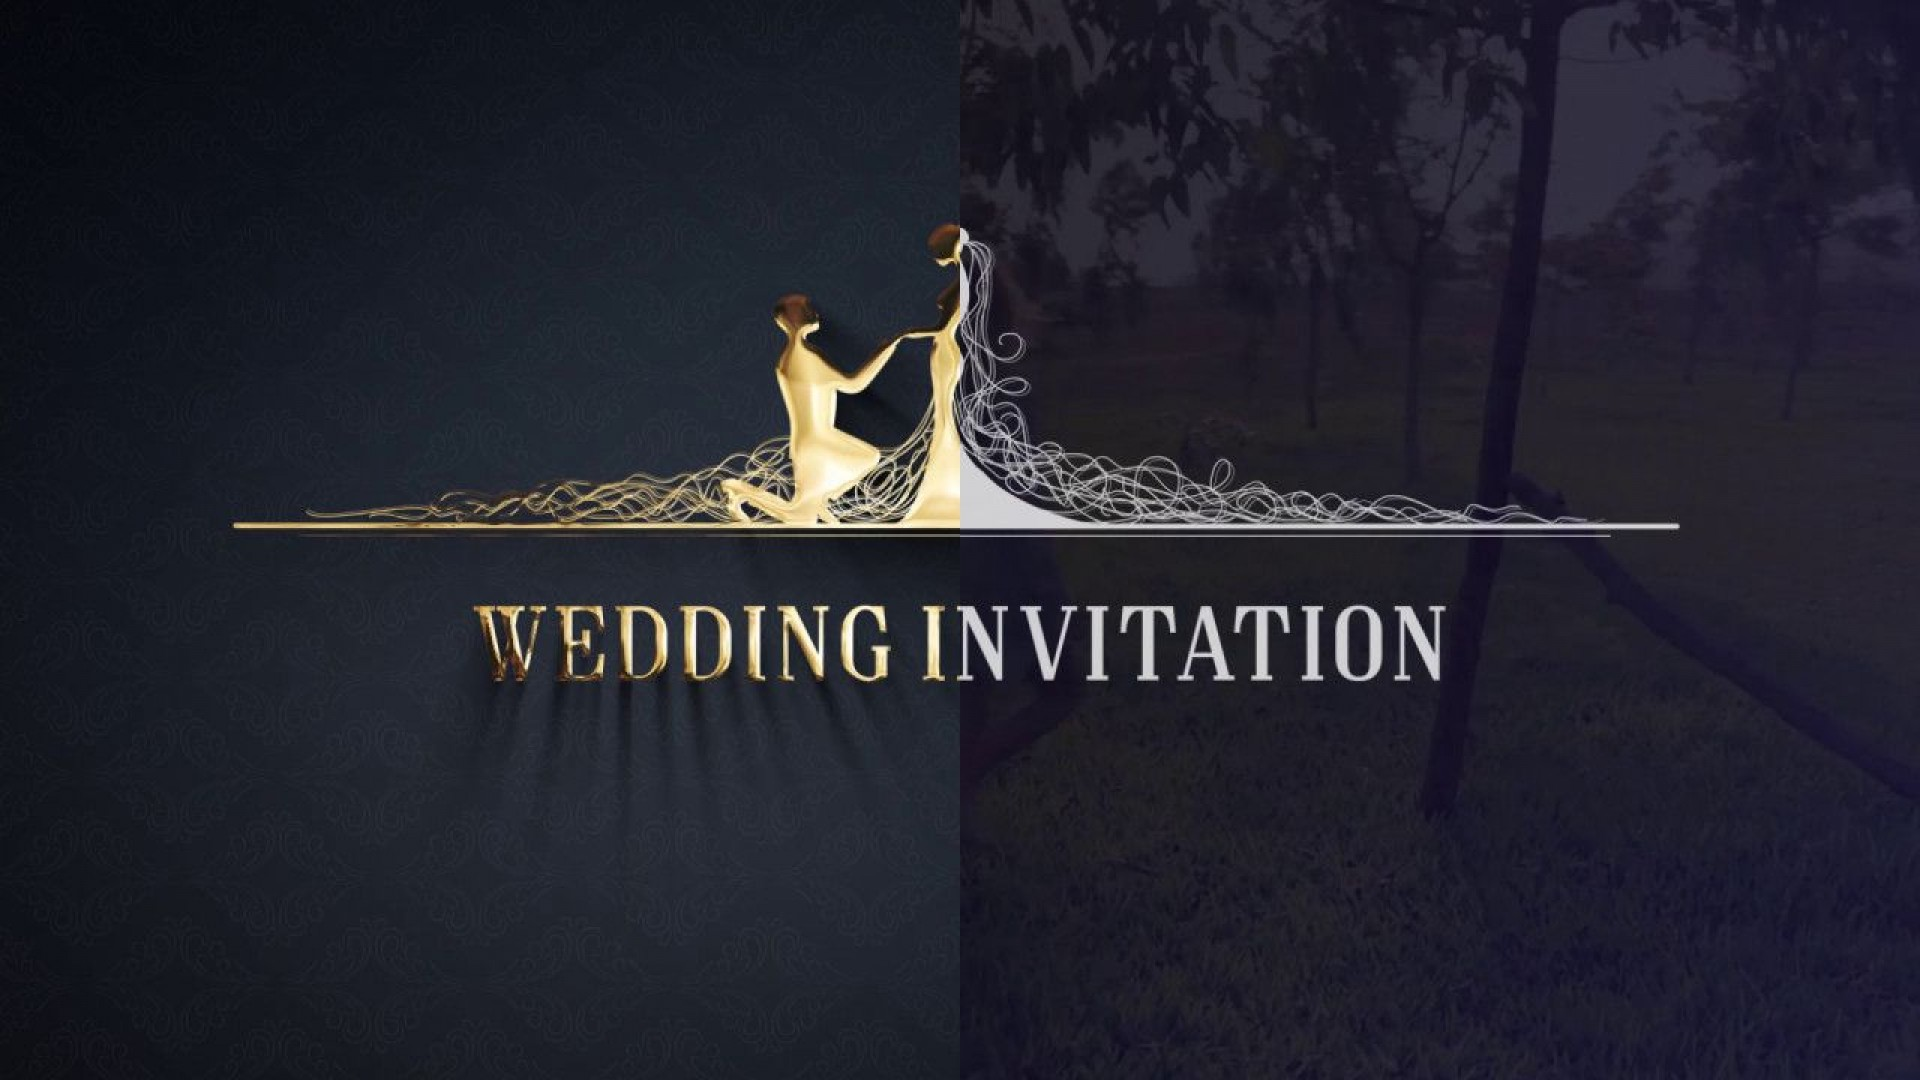 009 Surprising After Effect Wedding Template High Definition  Templates Free Download Cc Invitation1920